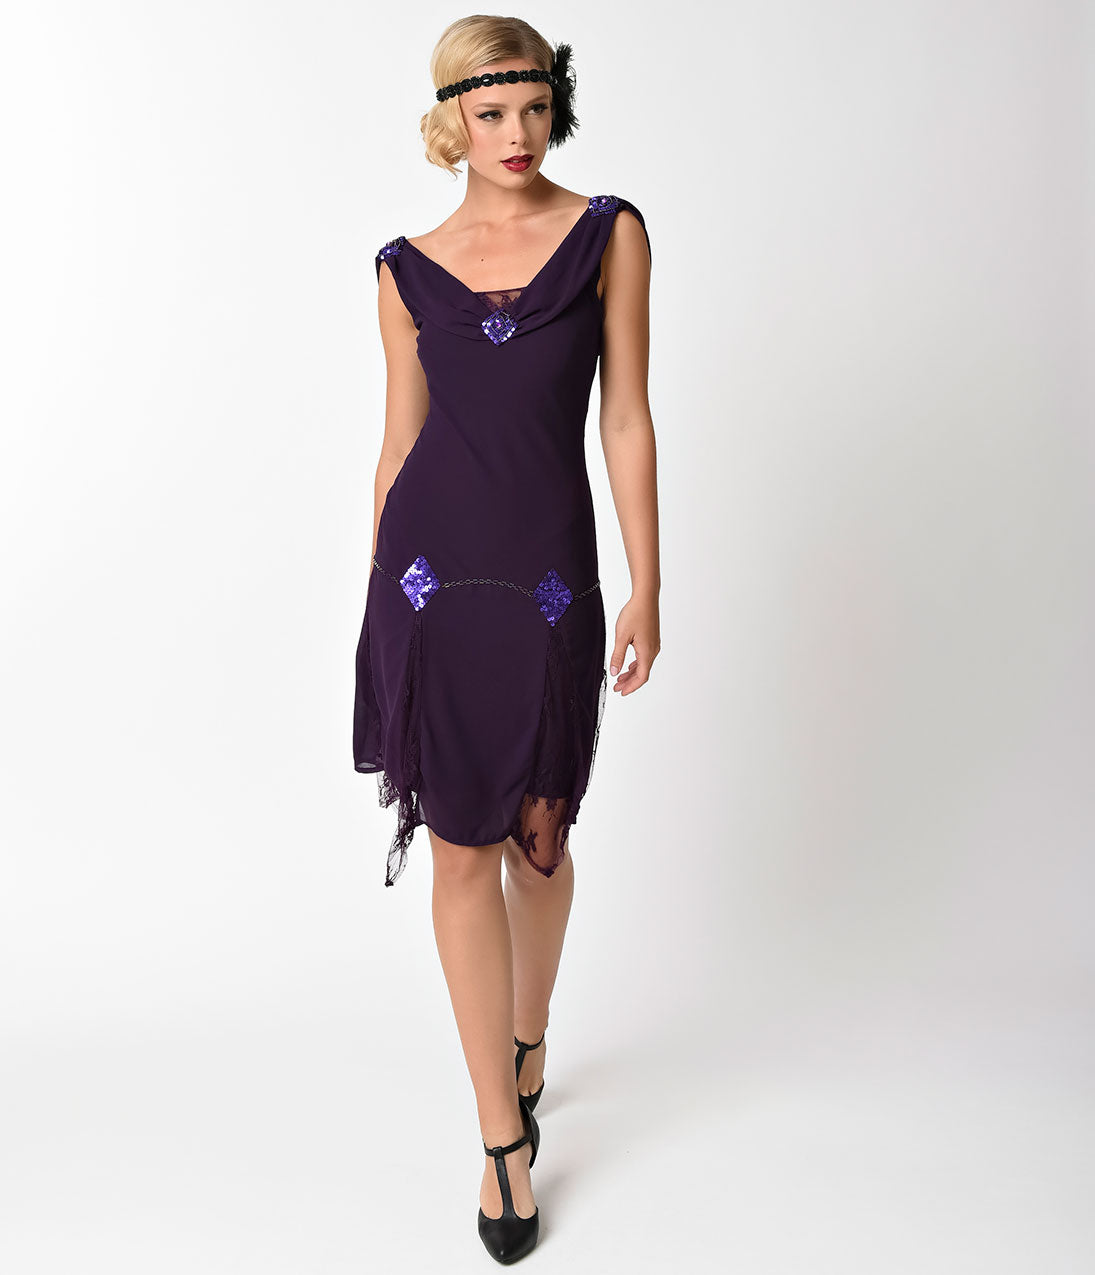 1920s Style Dresses, Flapper Dresses 1920s Style Dark Purple Hemingway Flapper Dress $98.00 AT vintagedancer.com